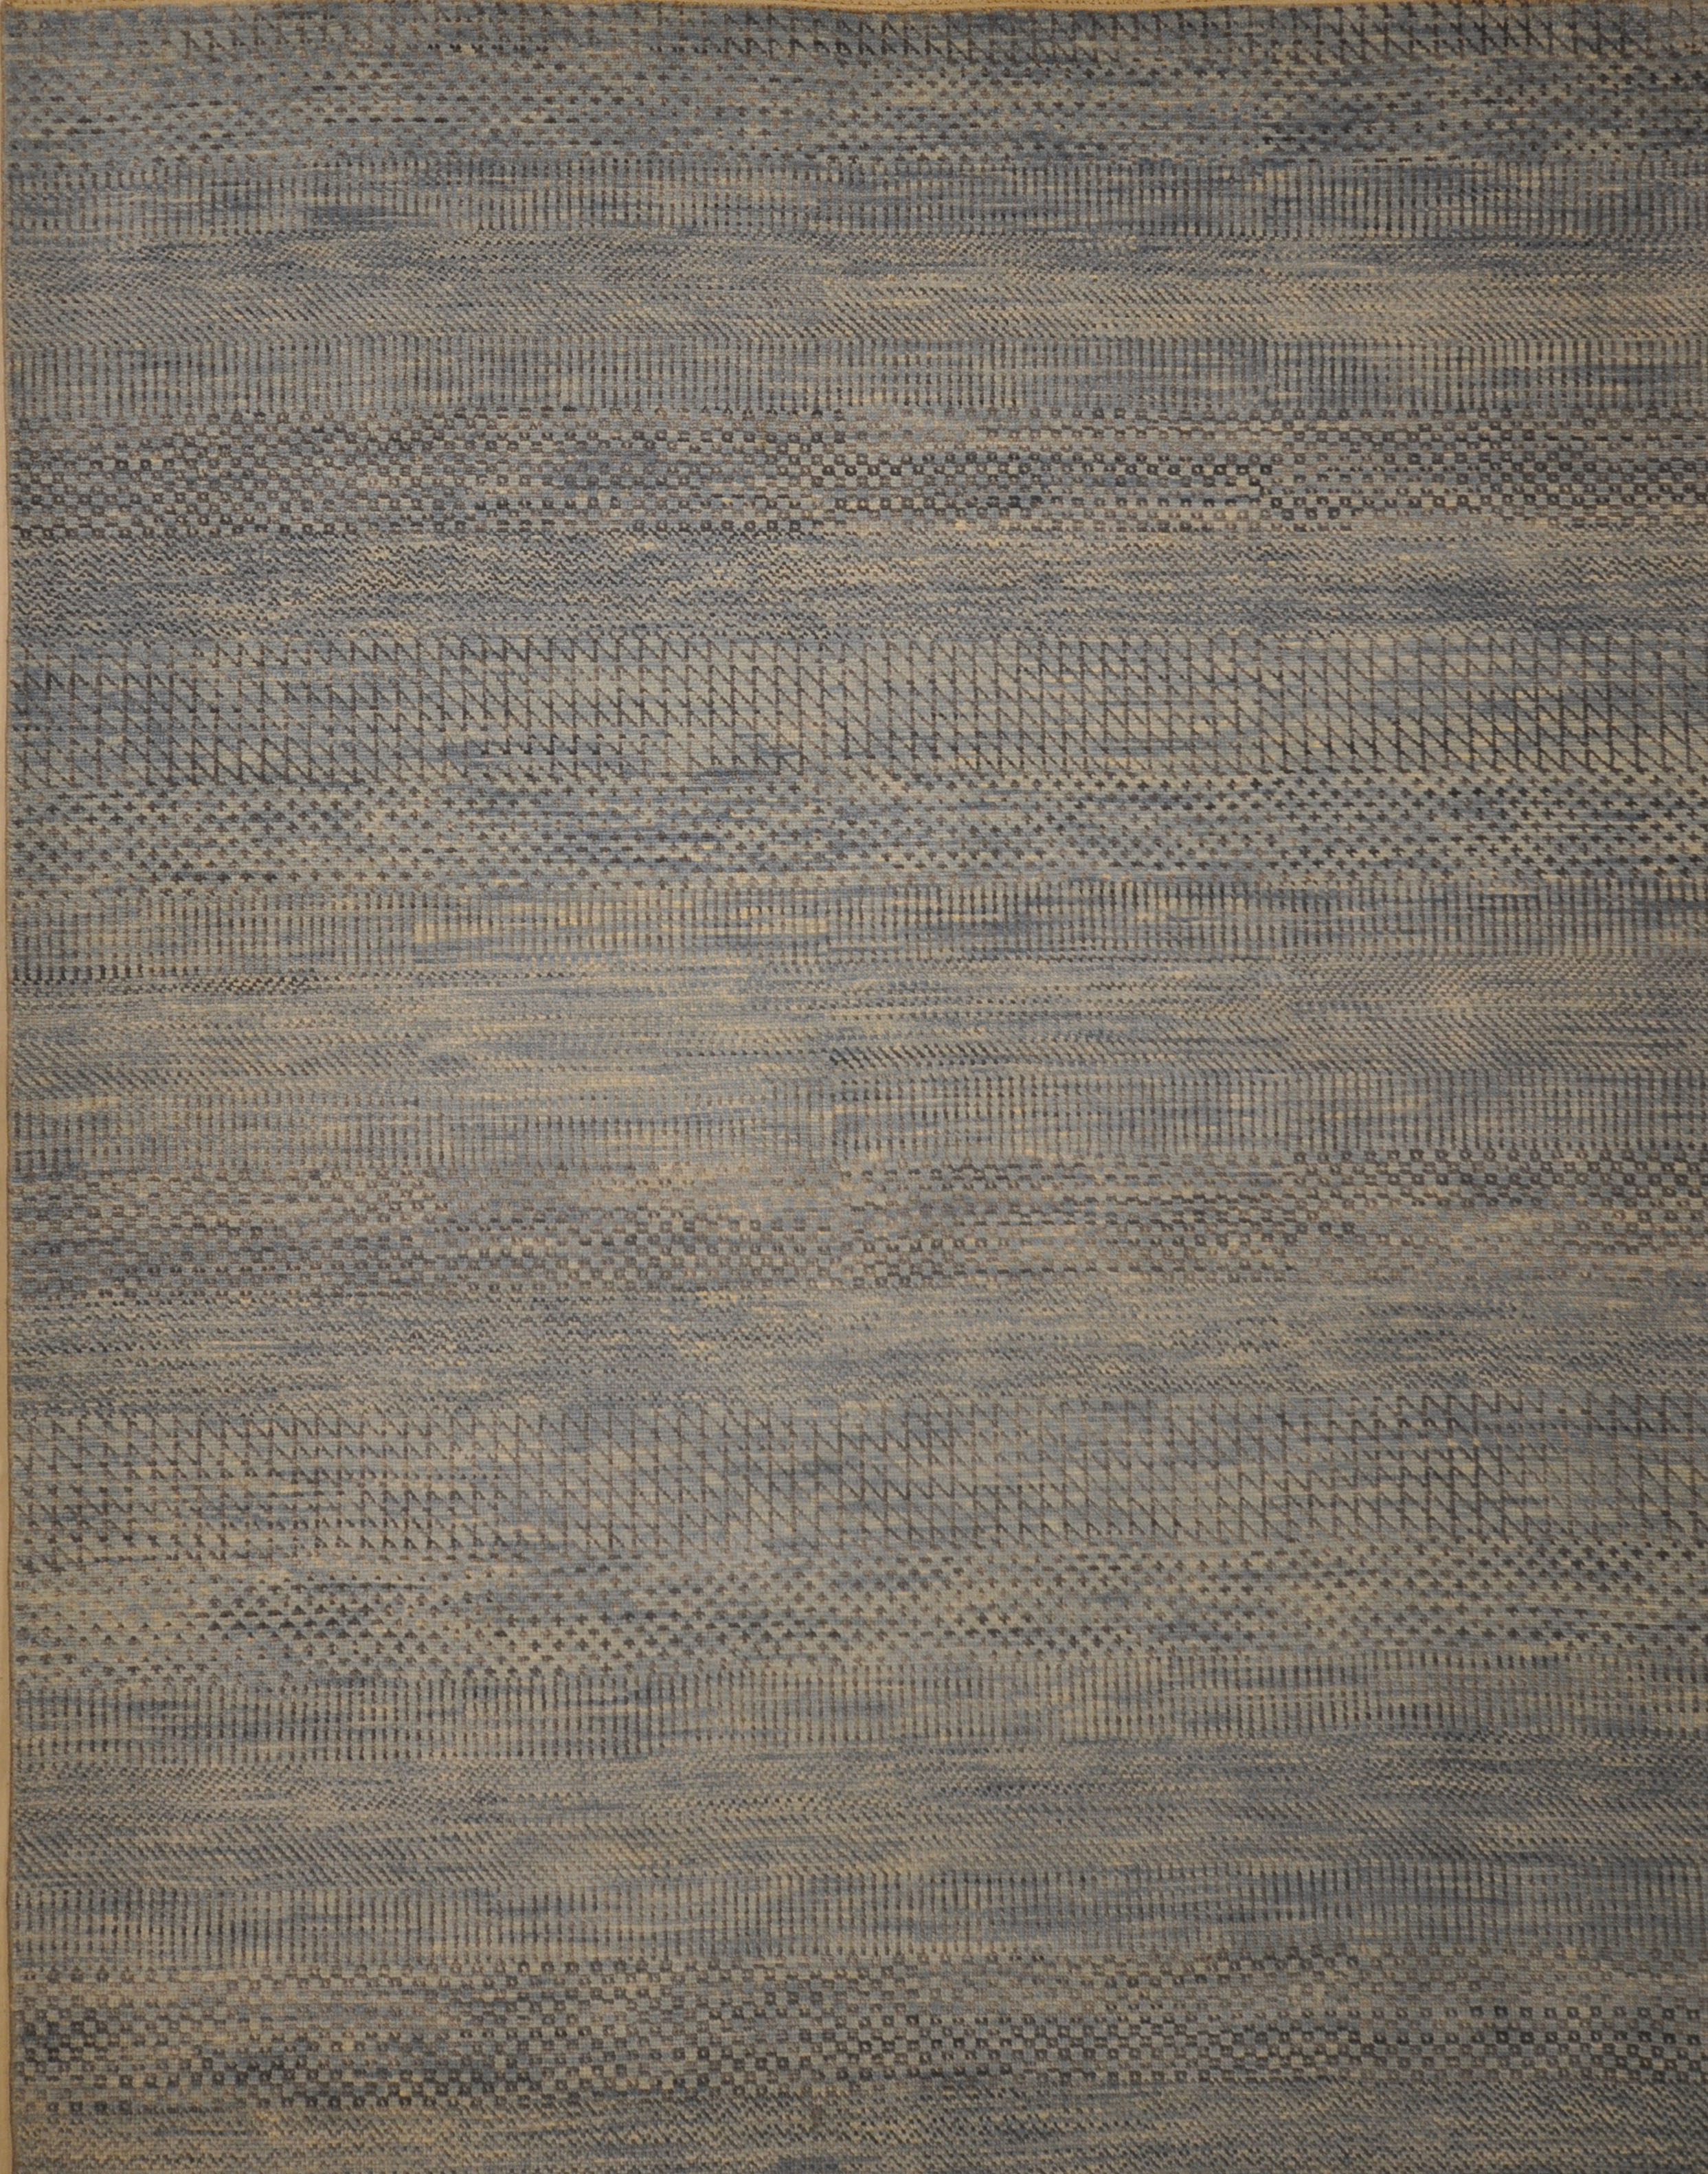 Grey Modern Patterned Rug